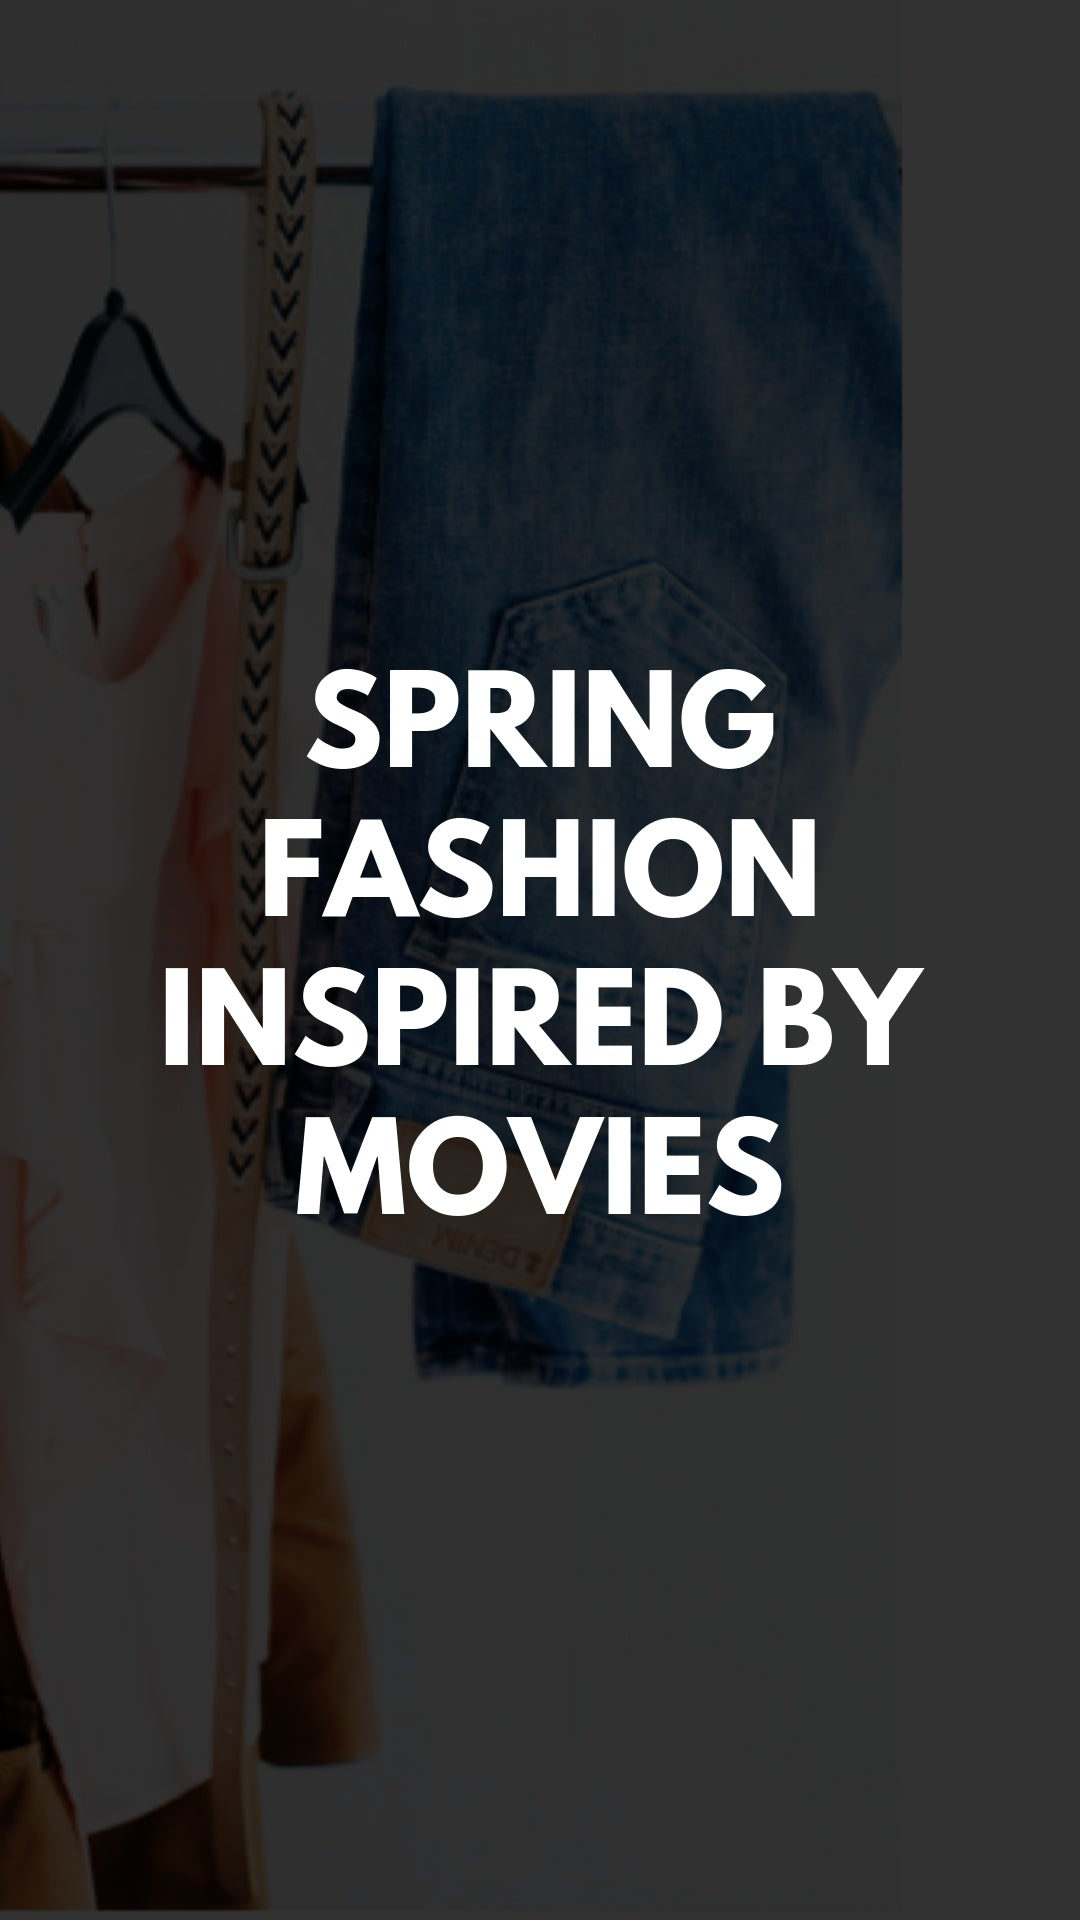 Spring Fashion Inspired by Movies